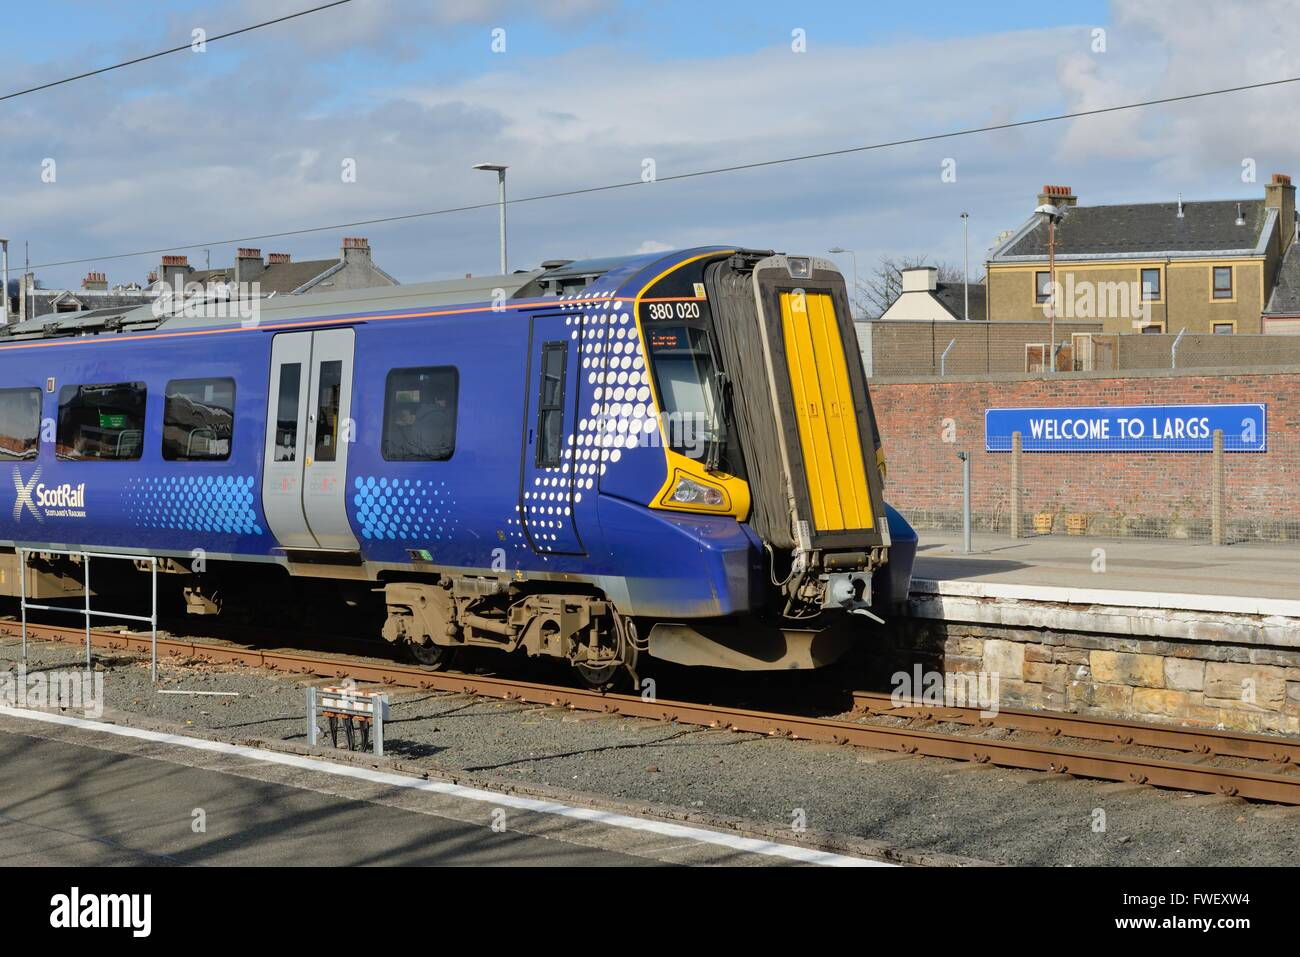 A Scotrail train alongside the platform in Largs station, Ayrshire, Scotland, UK - Stock Image